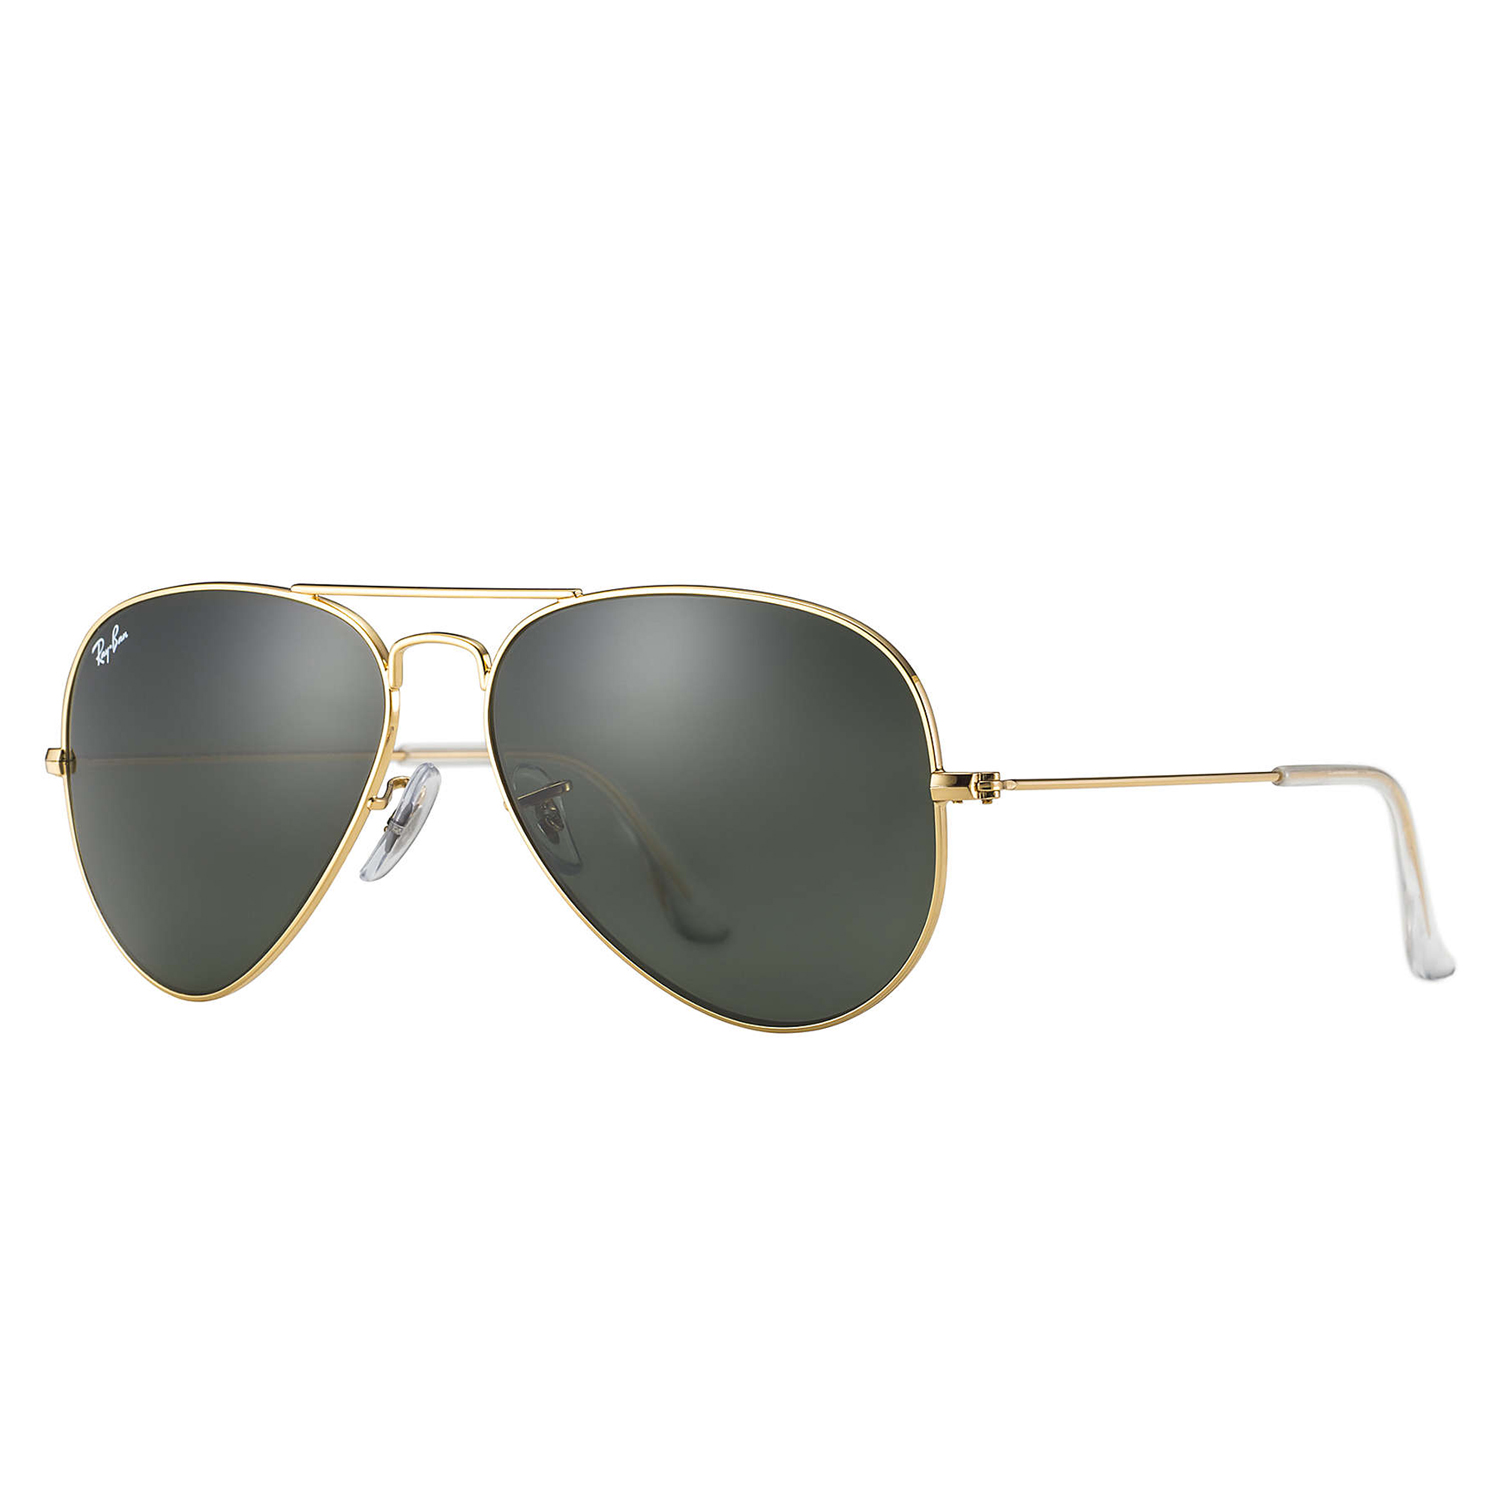 Classic Lunettes De Ray Or Soleil Rb3025 Ban Aviator Monture f76gyYbv